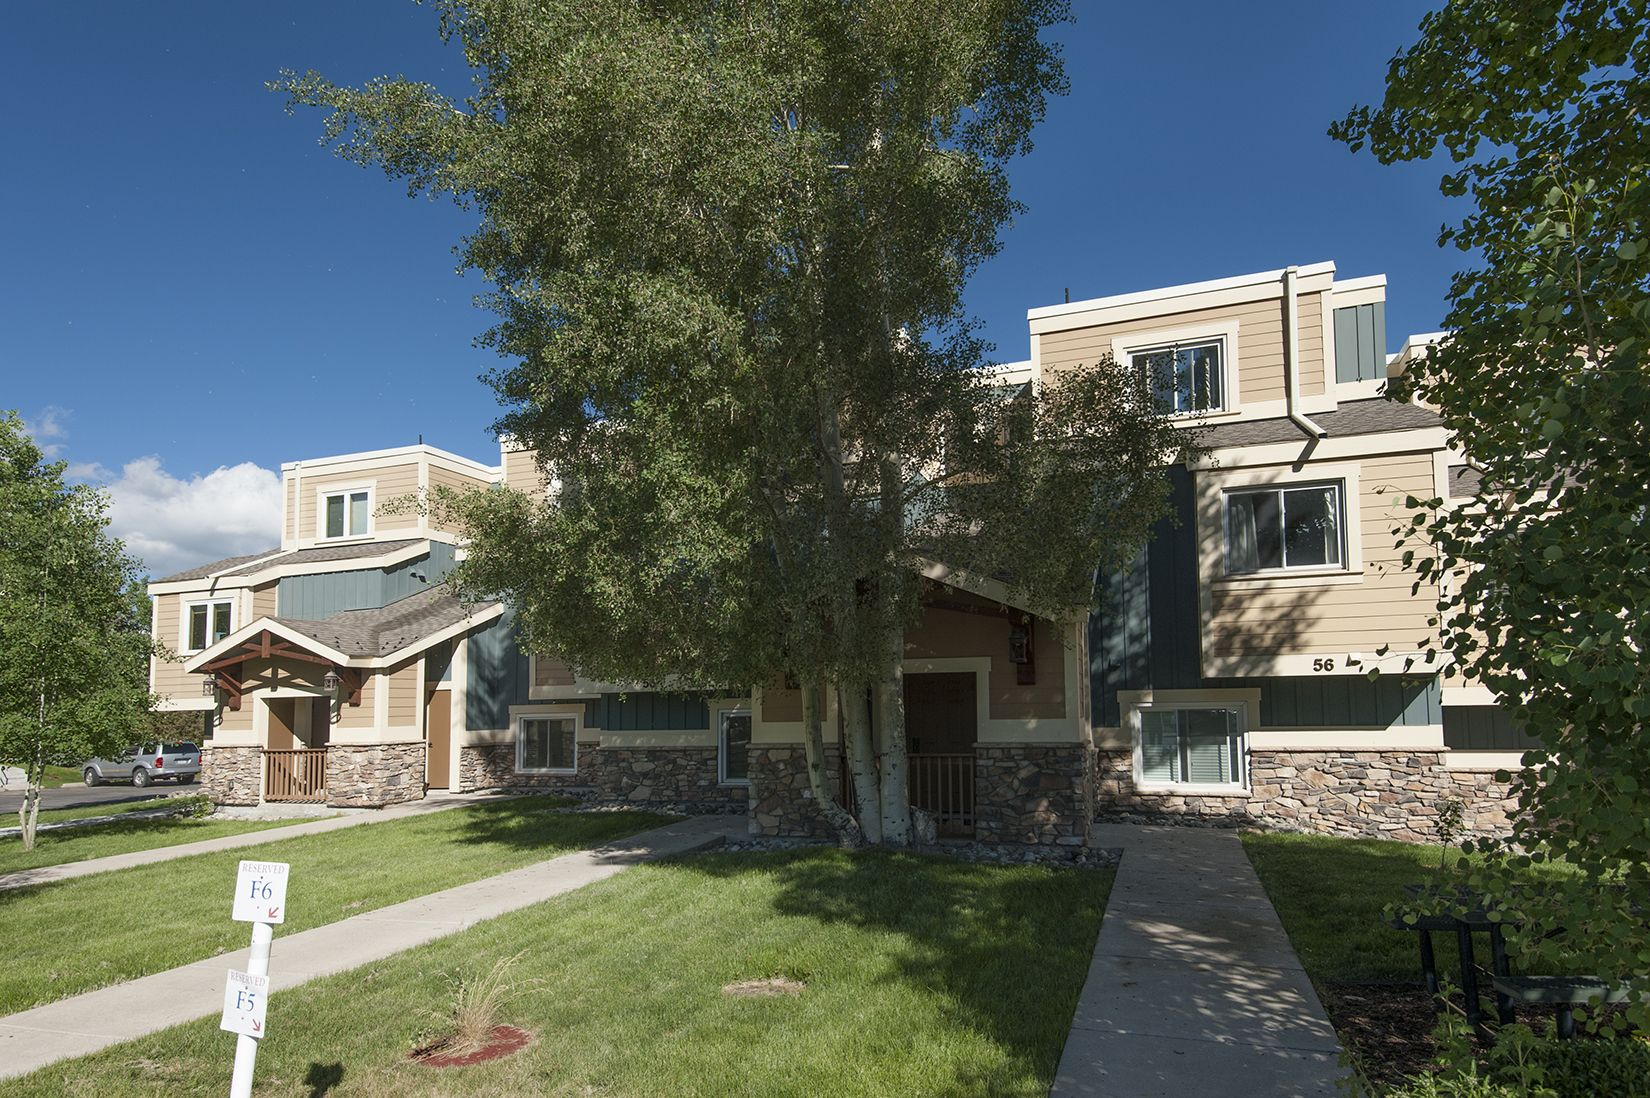 56 Cove BOULEVARD # F8 DILLON, Colorado 80435